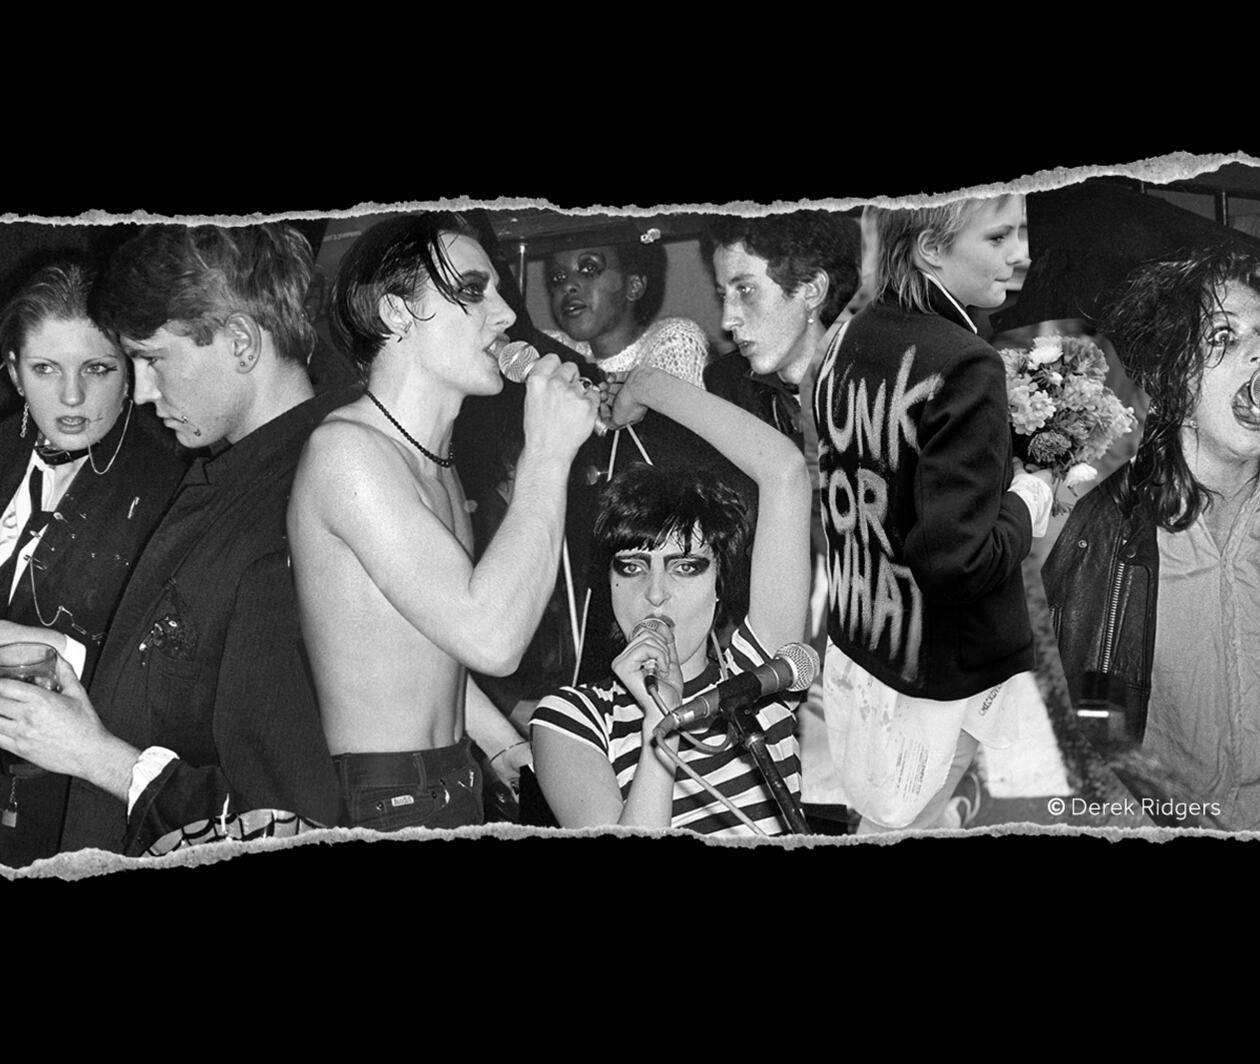 Anarchy in the UK: A History of Punk from 1976-78